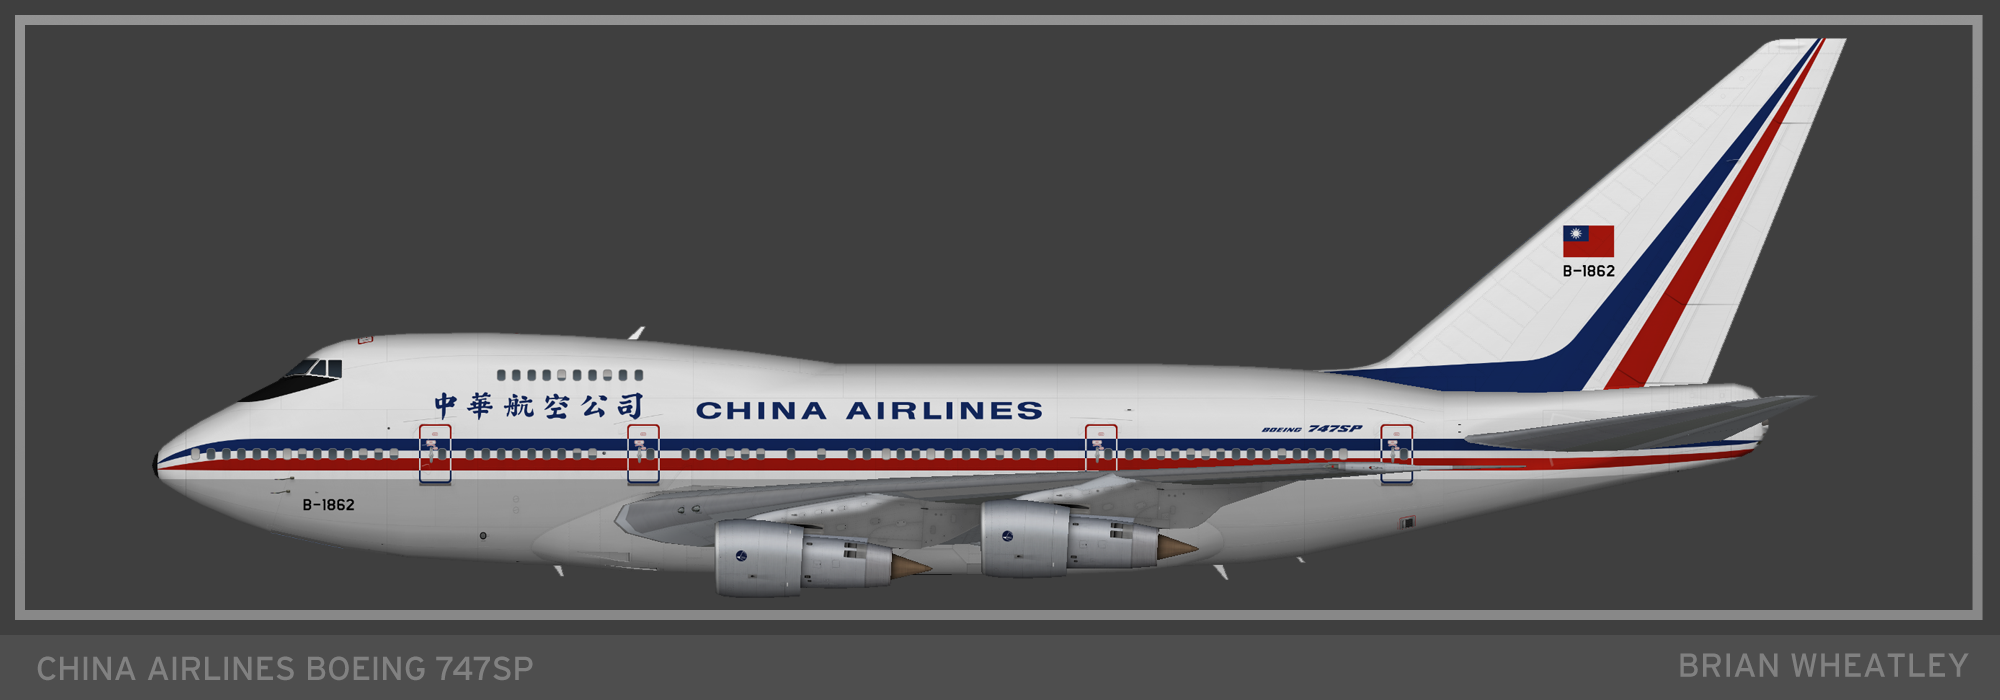 brw_b74l_chinaairlines